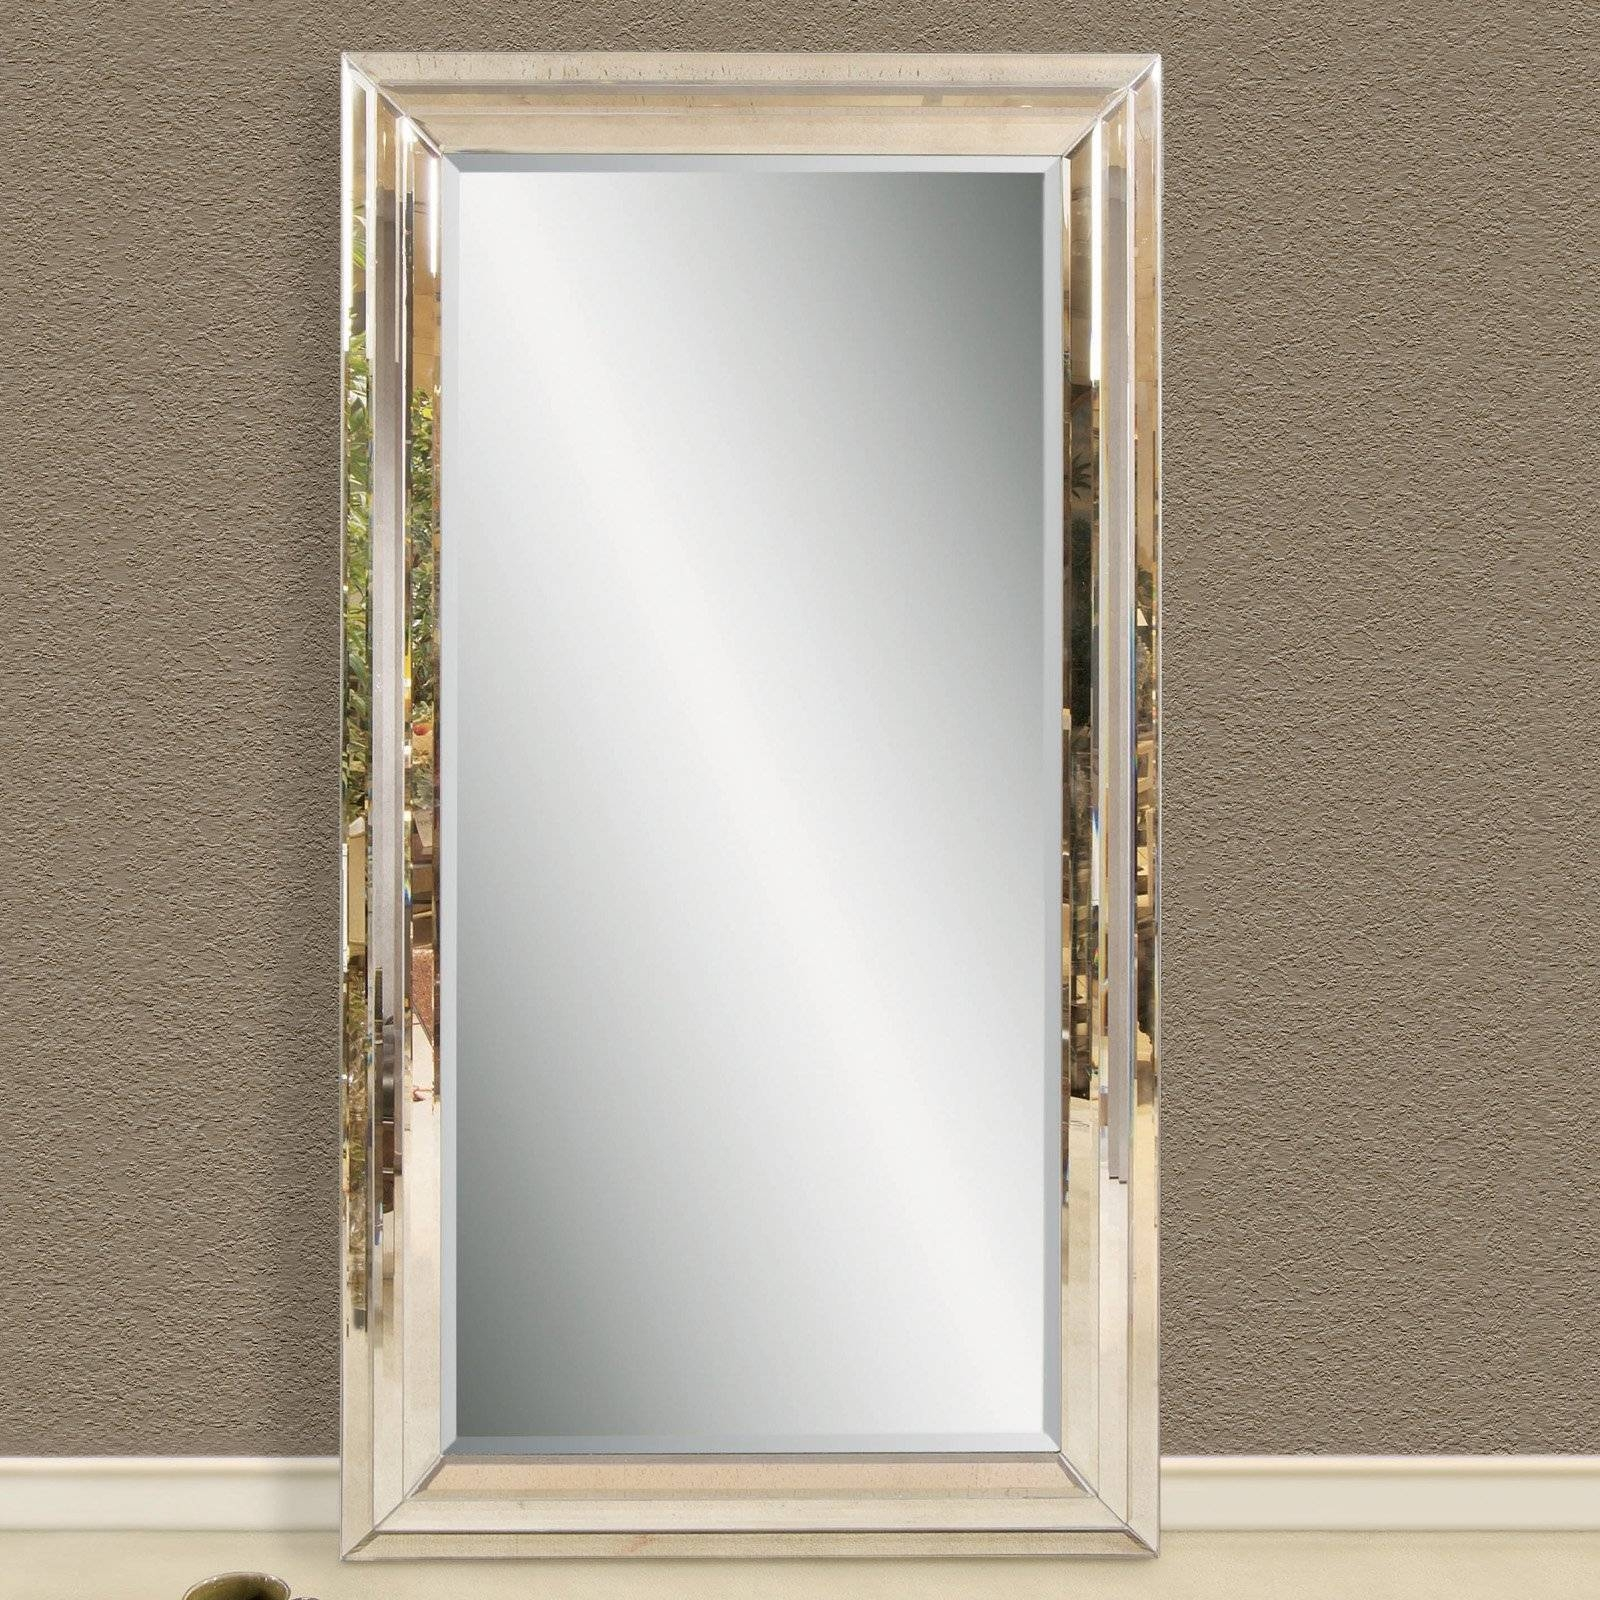 Cheap Big Mirrors Uk | Vanity Decoration Throughout Cheap Mirrors (View 5 of 15)